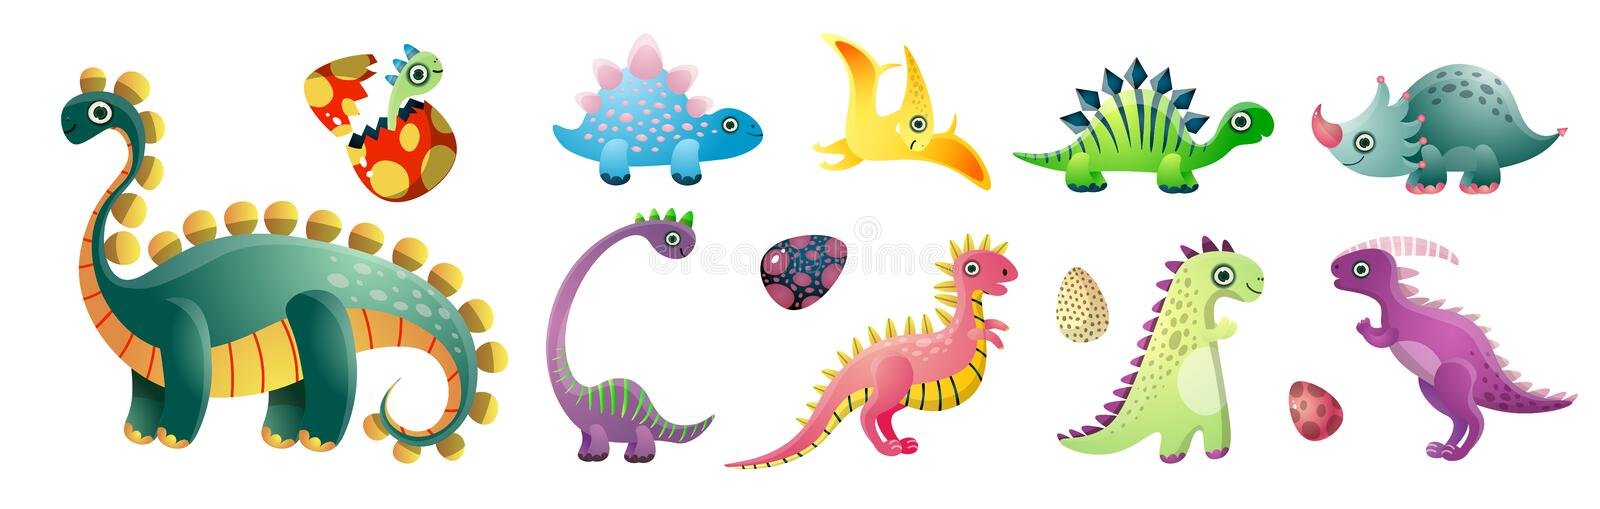 Set of cute colorful dinosaurs and colorful kid egg. At old period. Cartoon style. Vector illustration on white background stock illustration